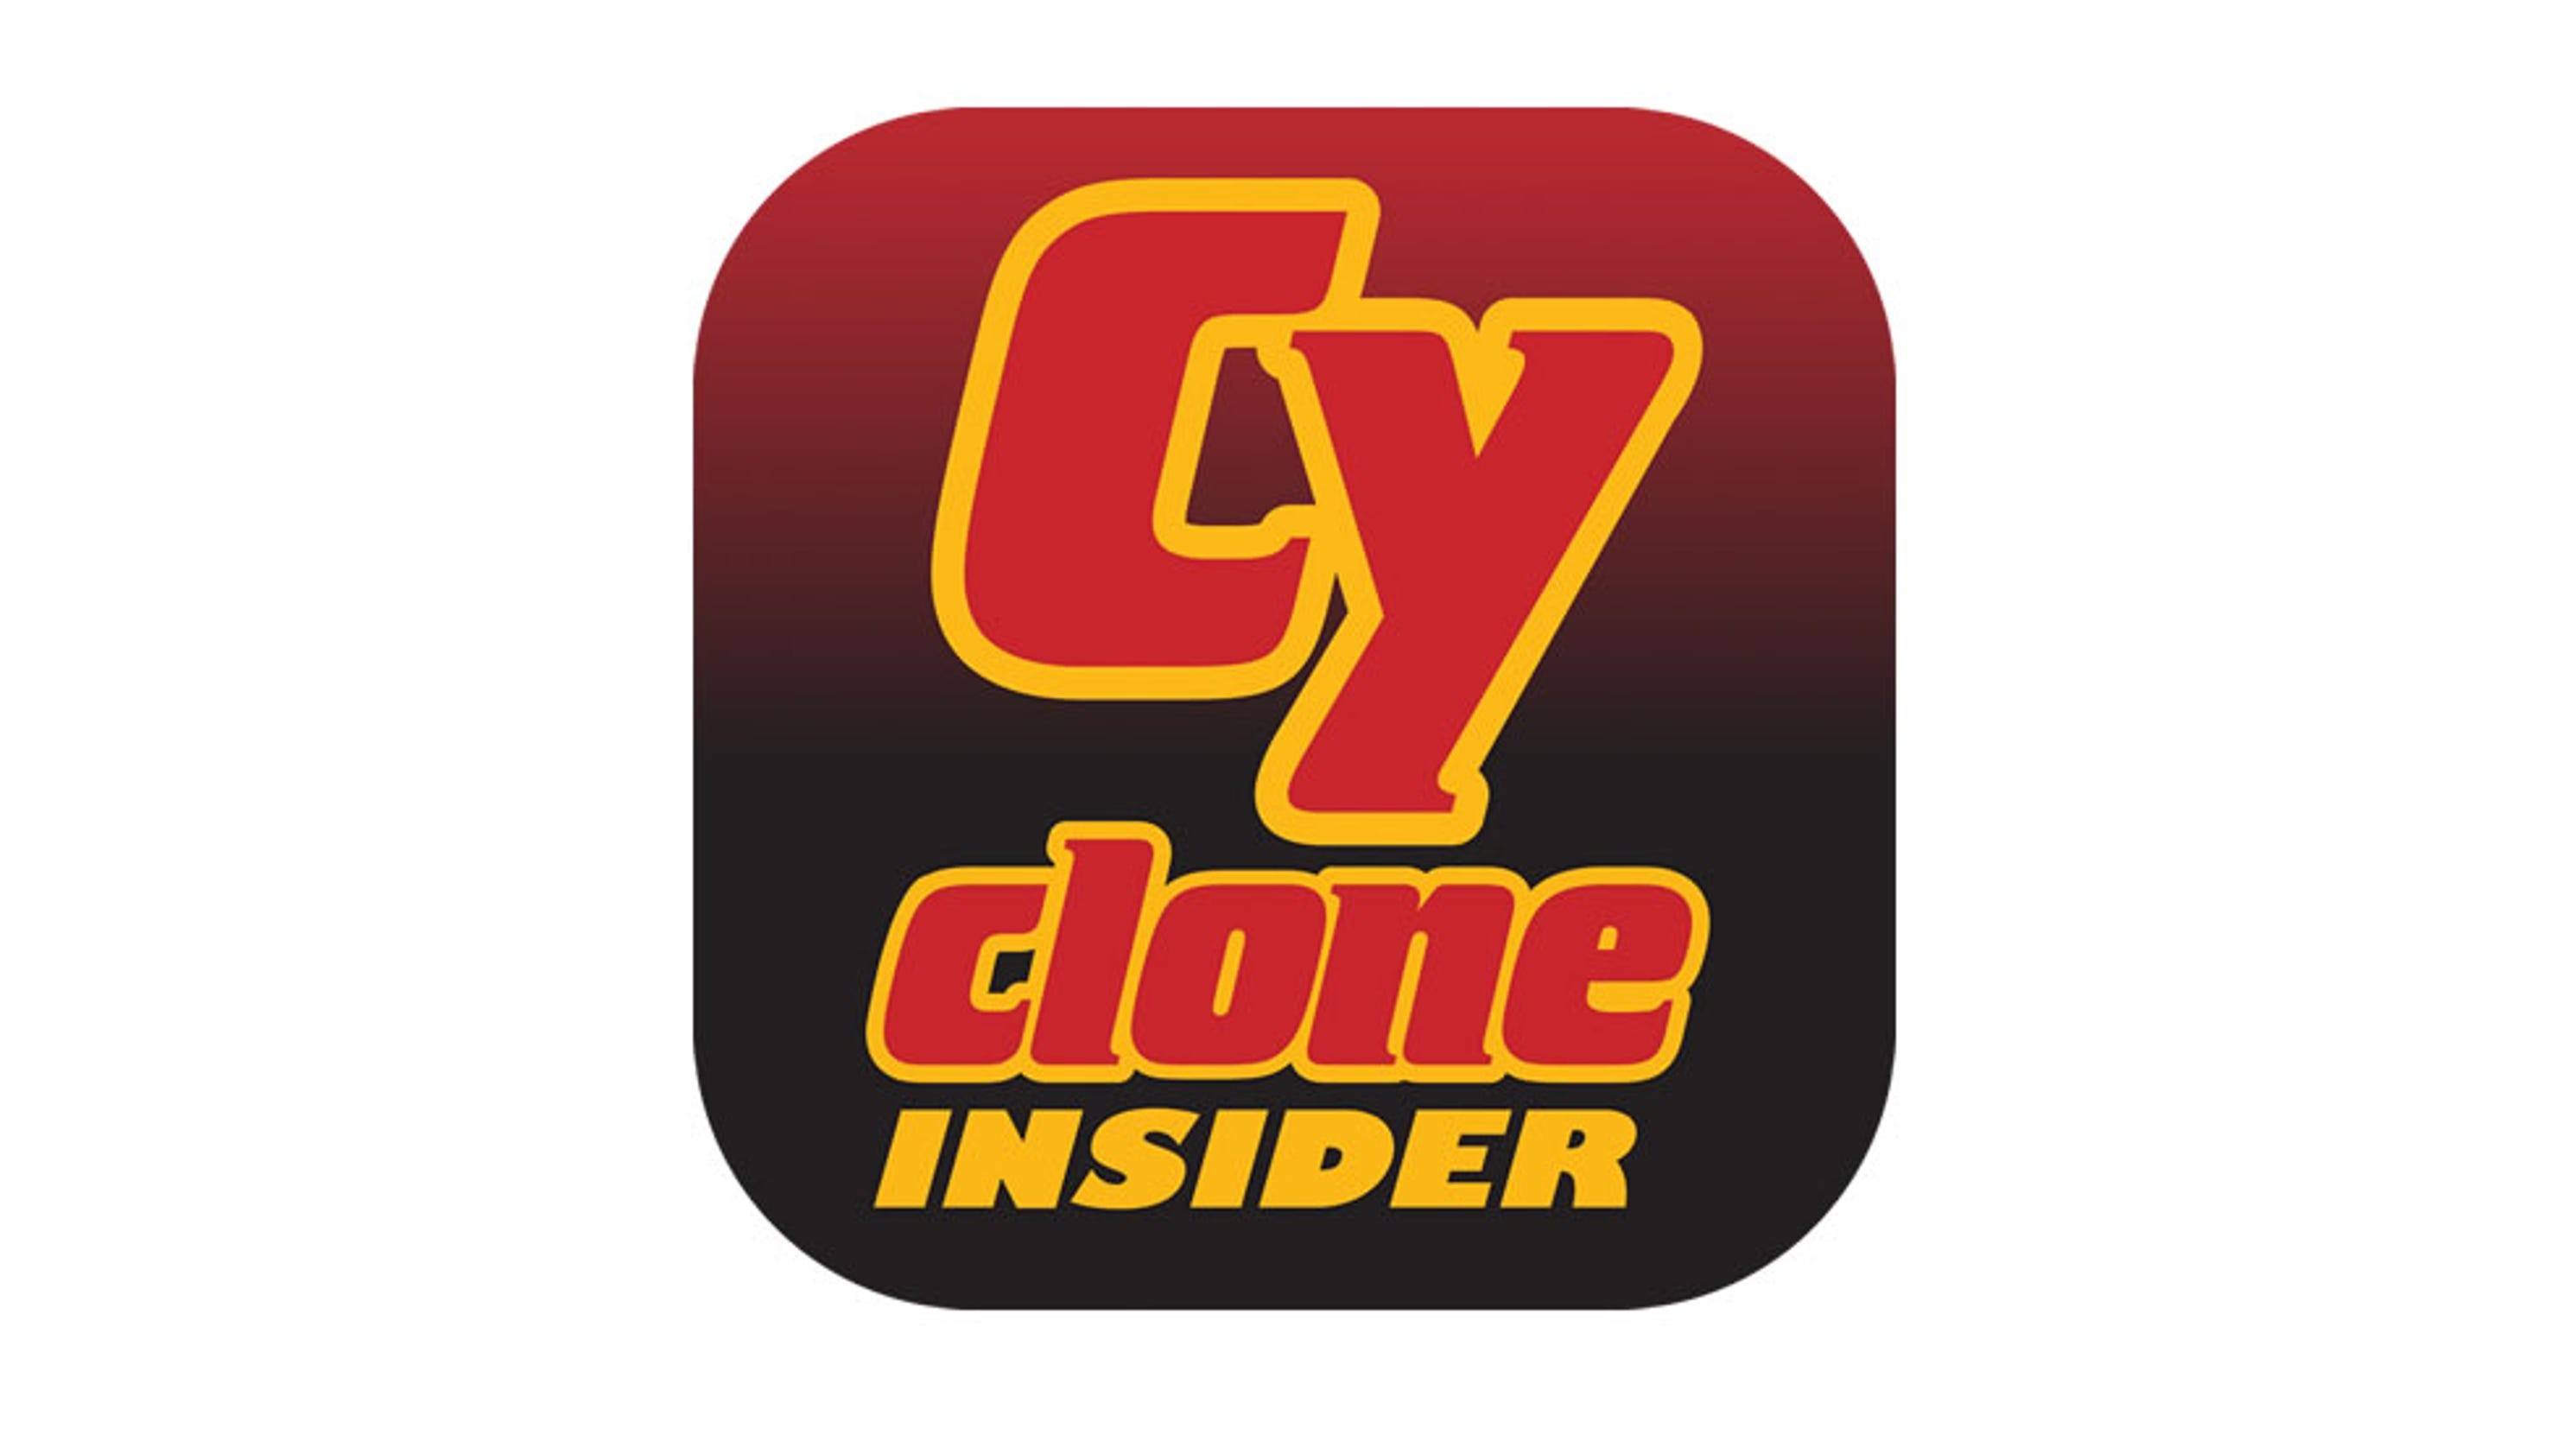 1409323527000-cyclone-insider-button